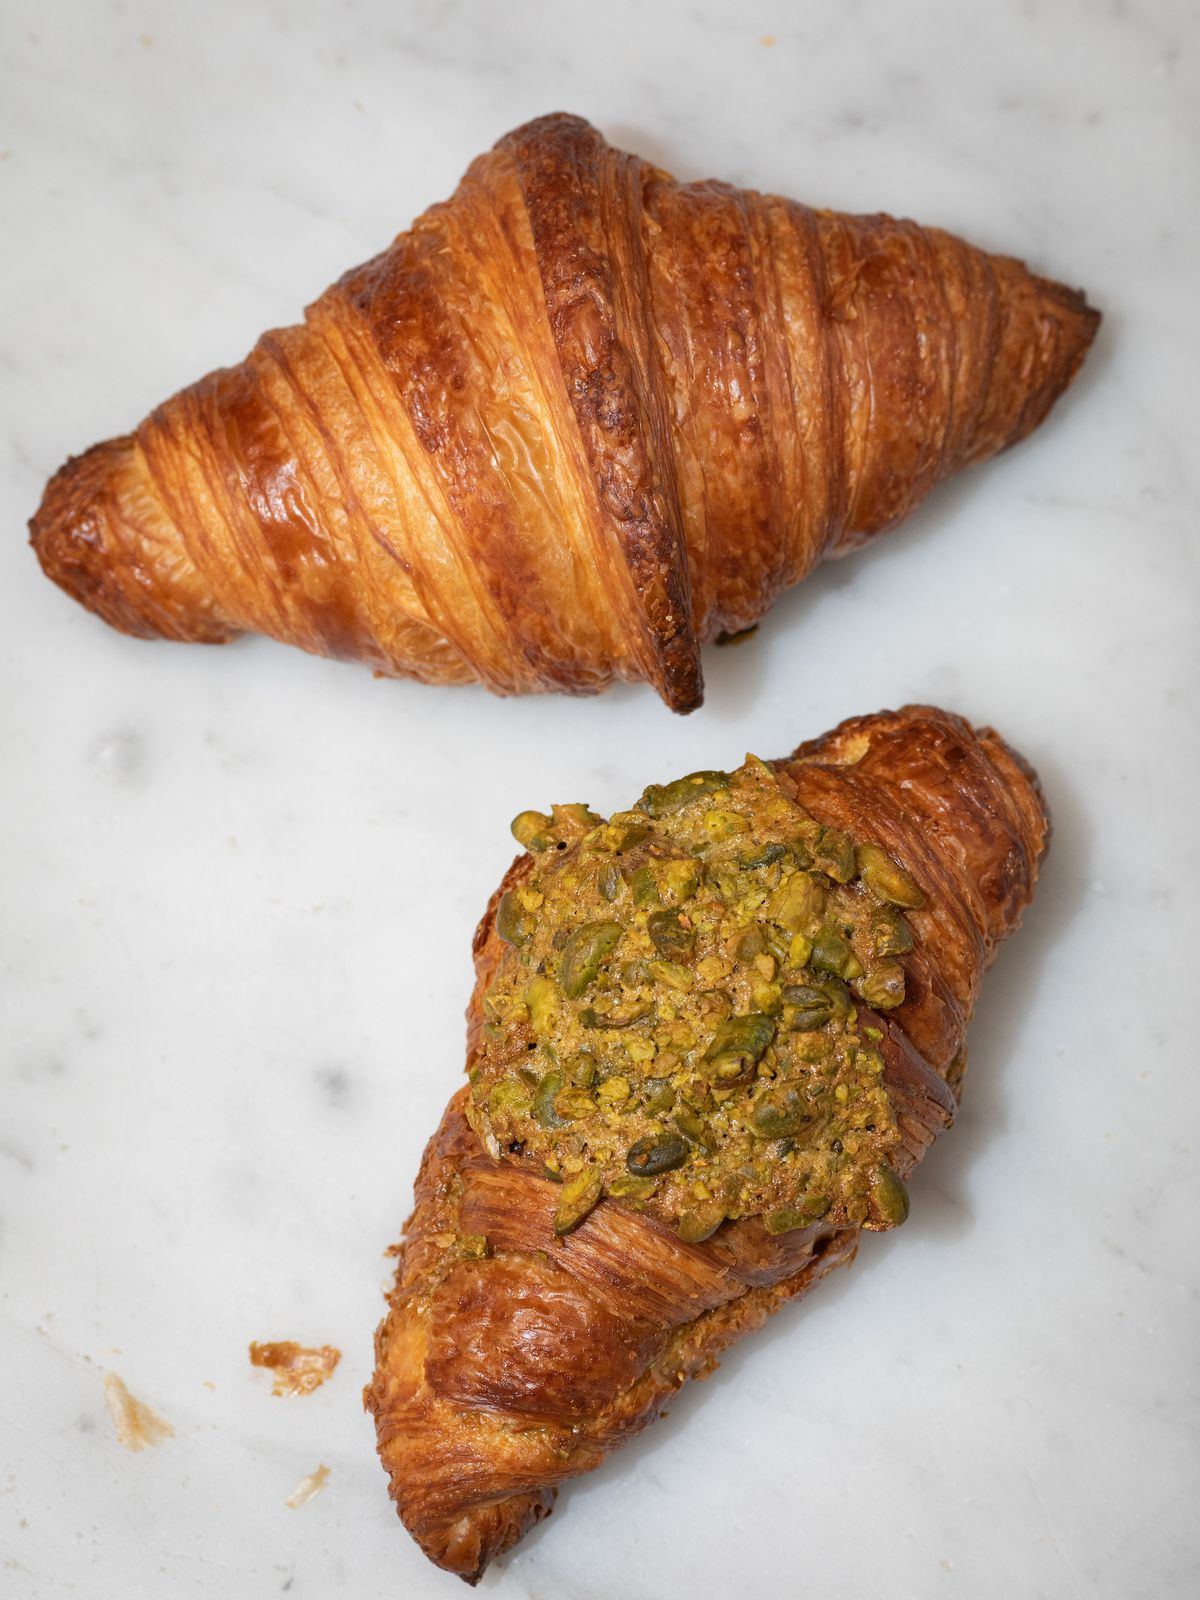 Two croissants side by side with some green chopped pistachios on top of one